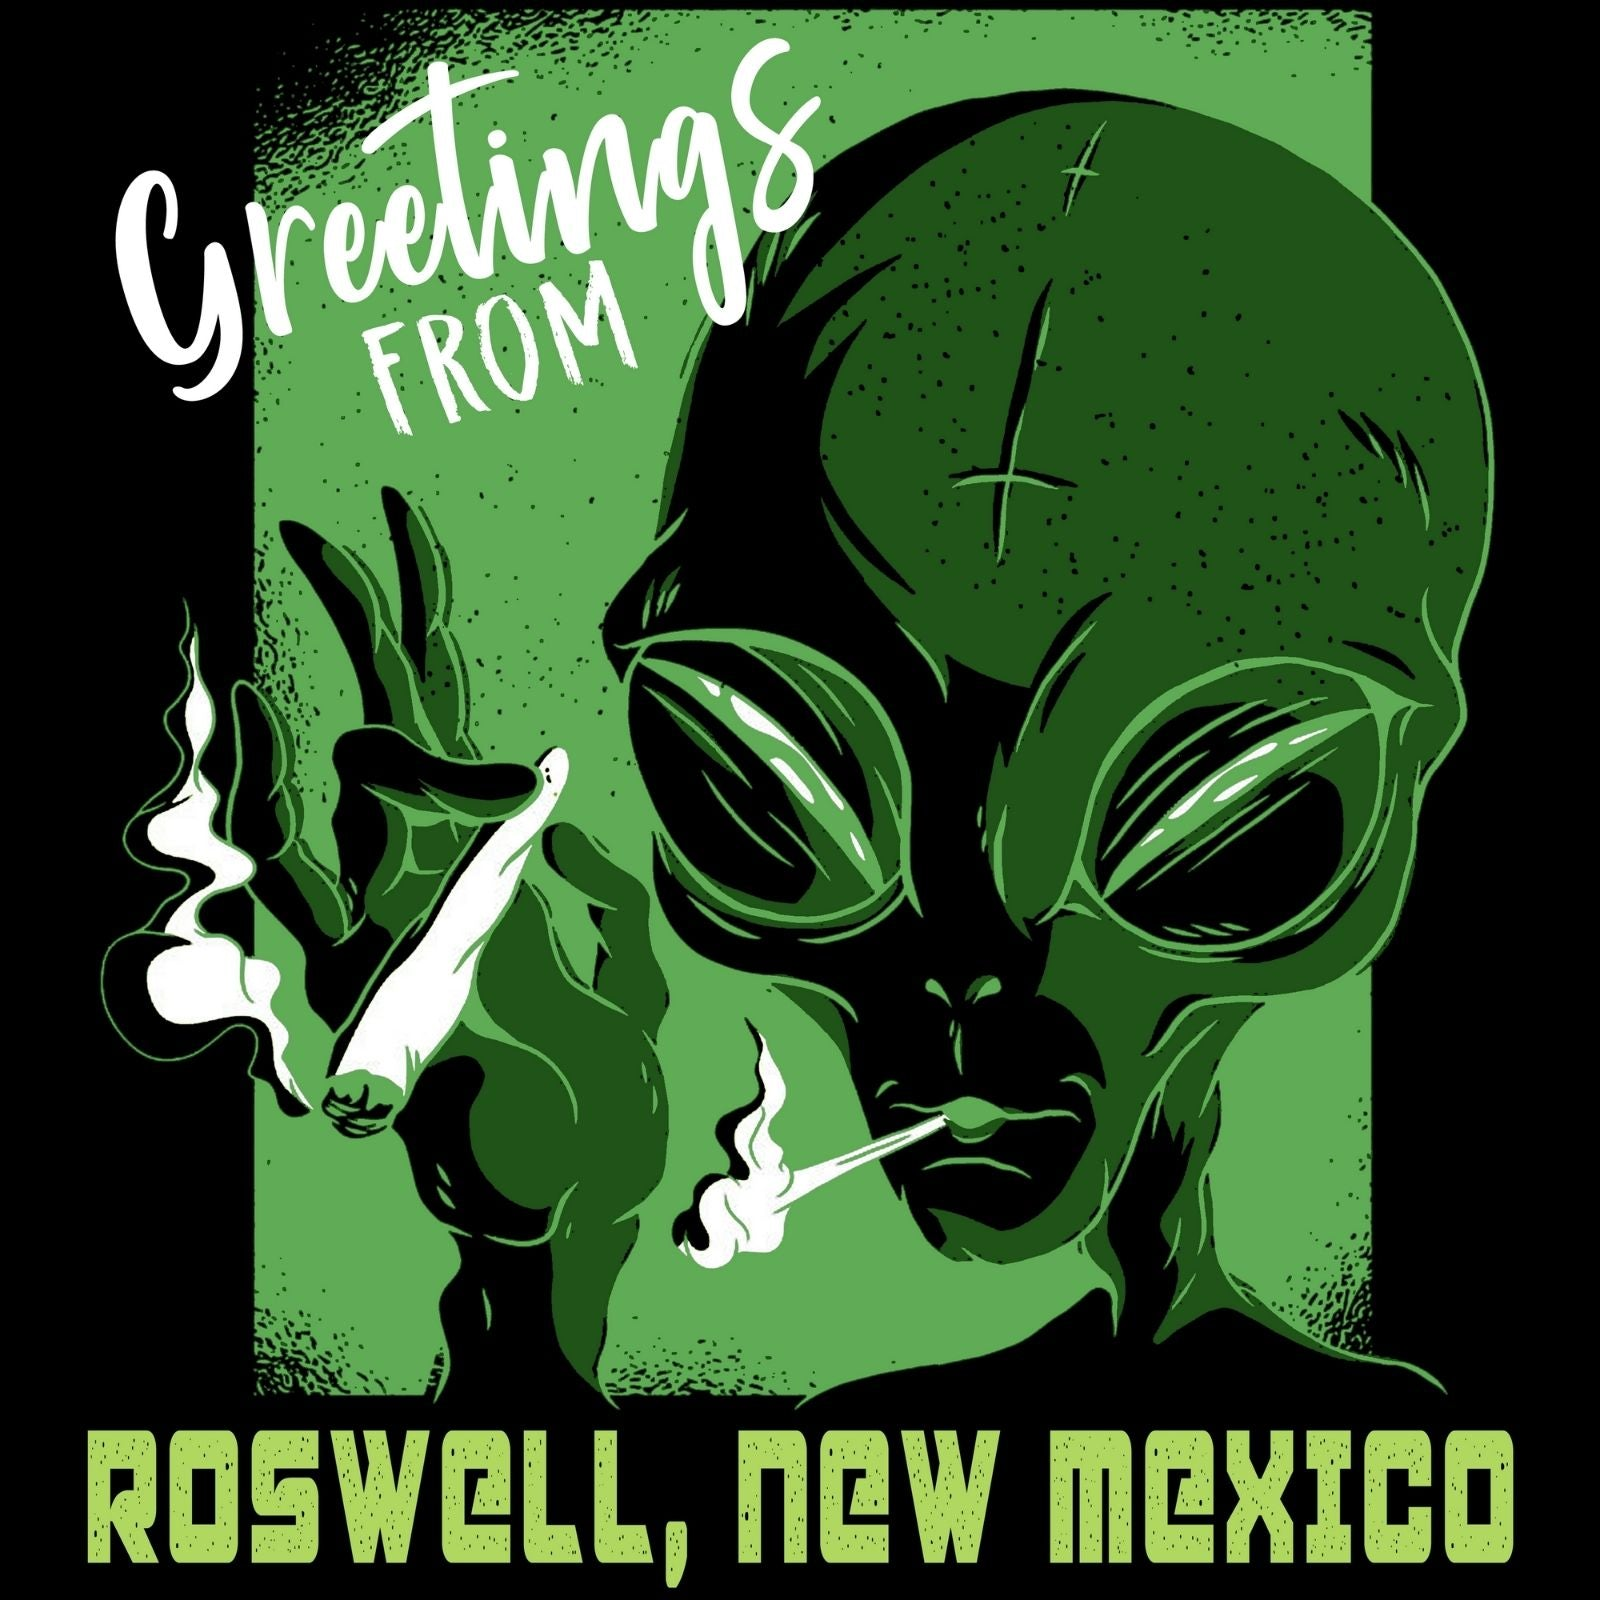 Greetings From Roswell - Bastard Graphics